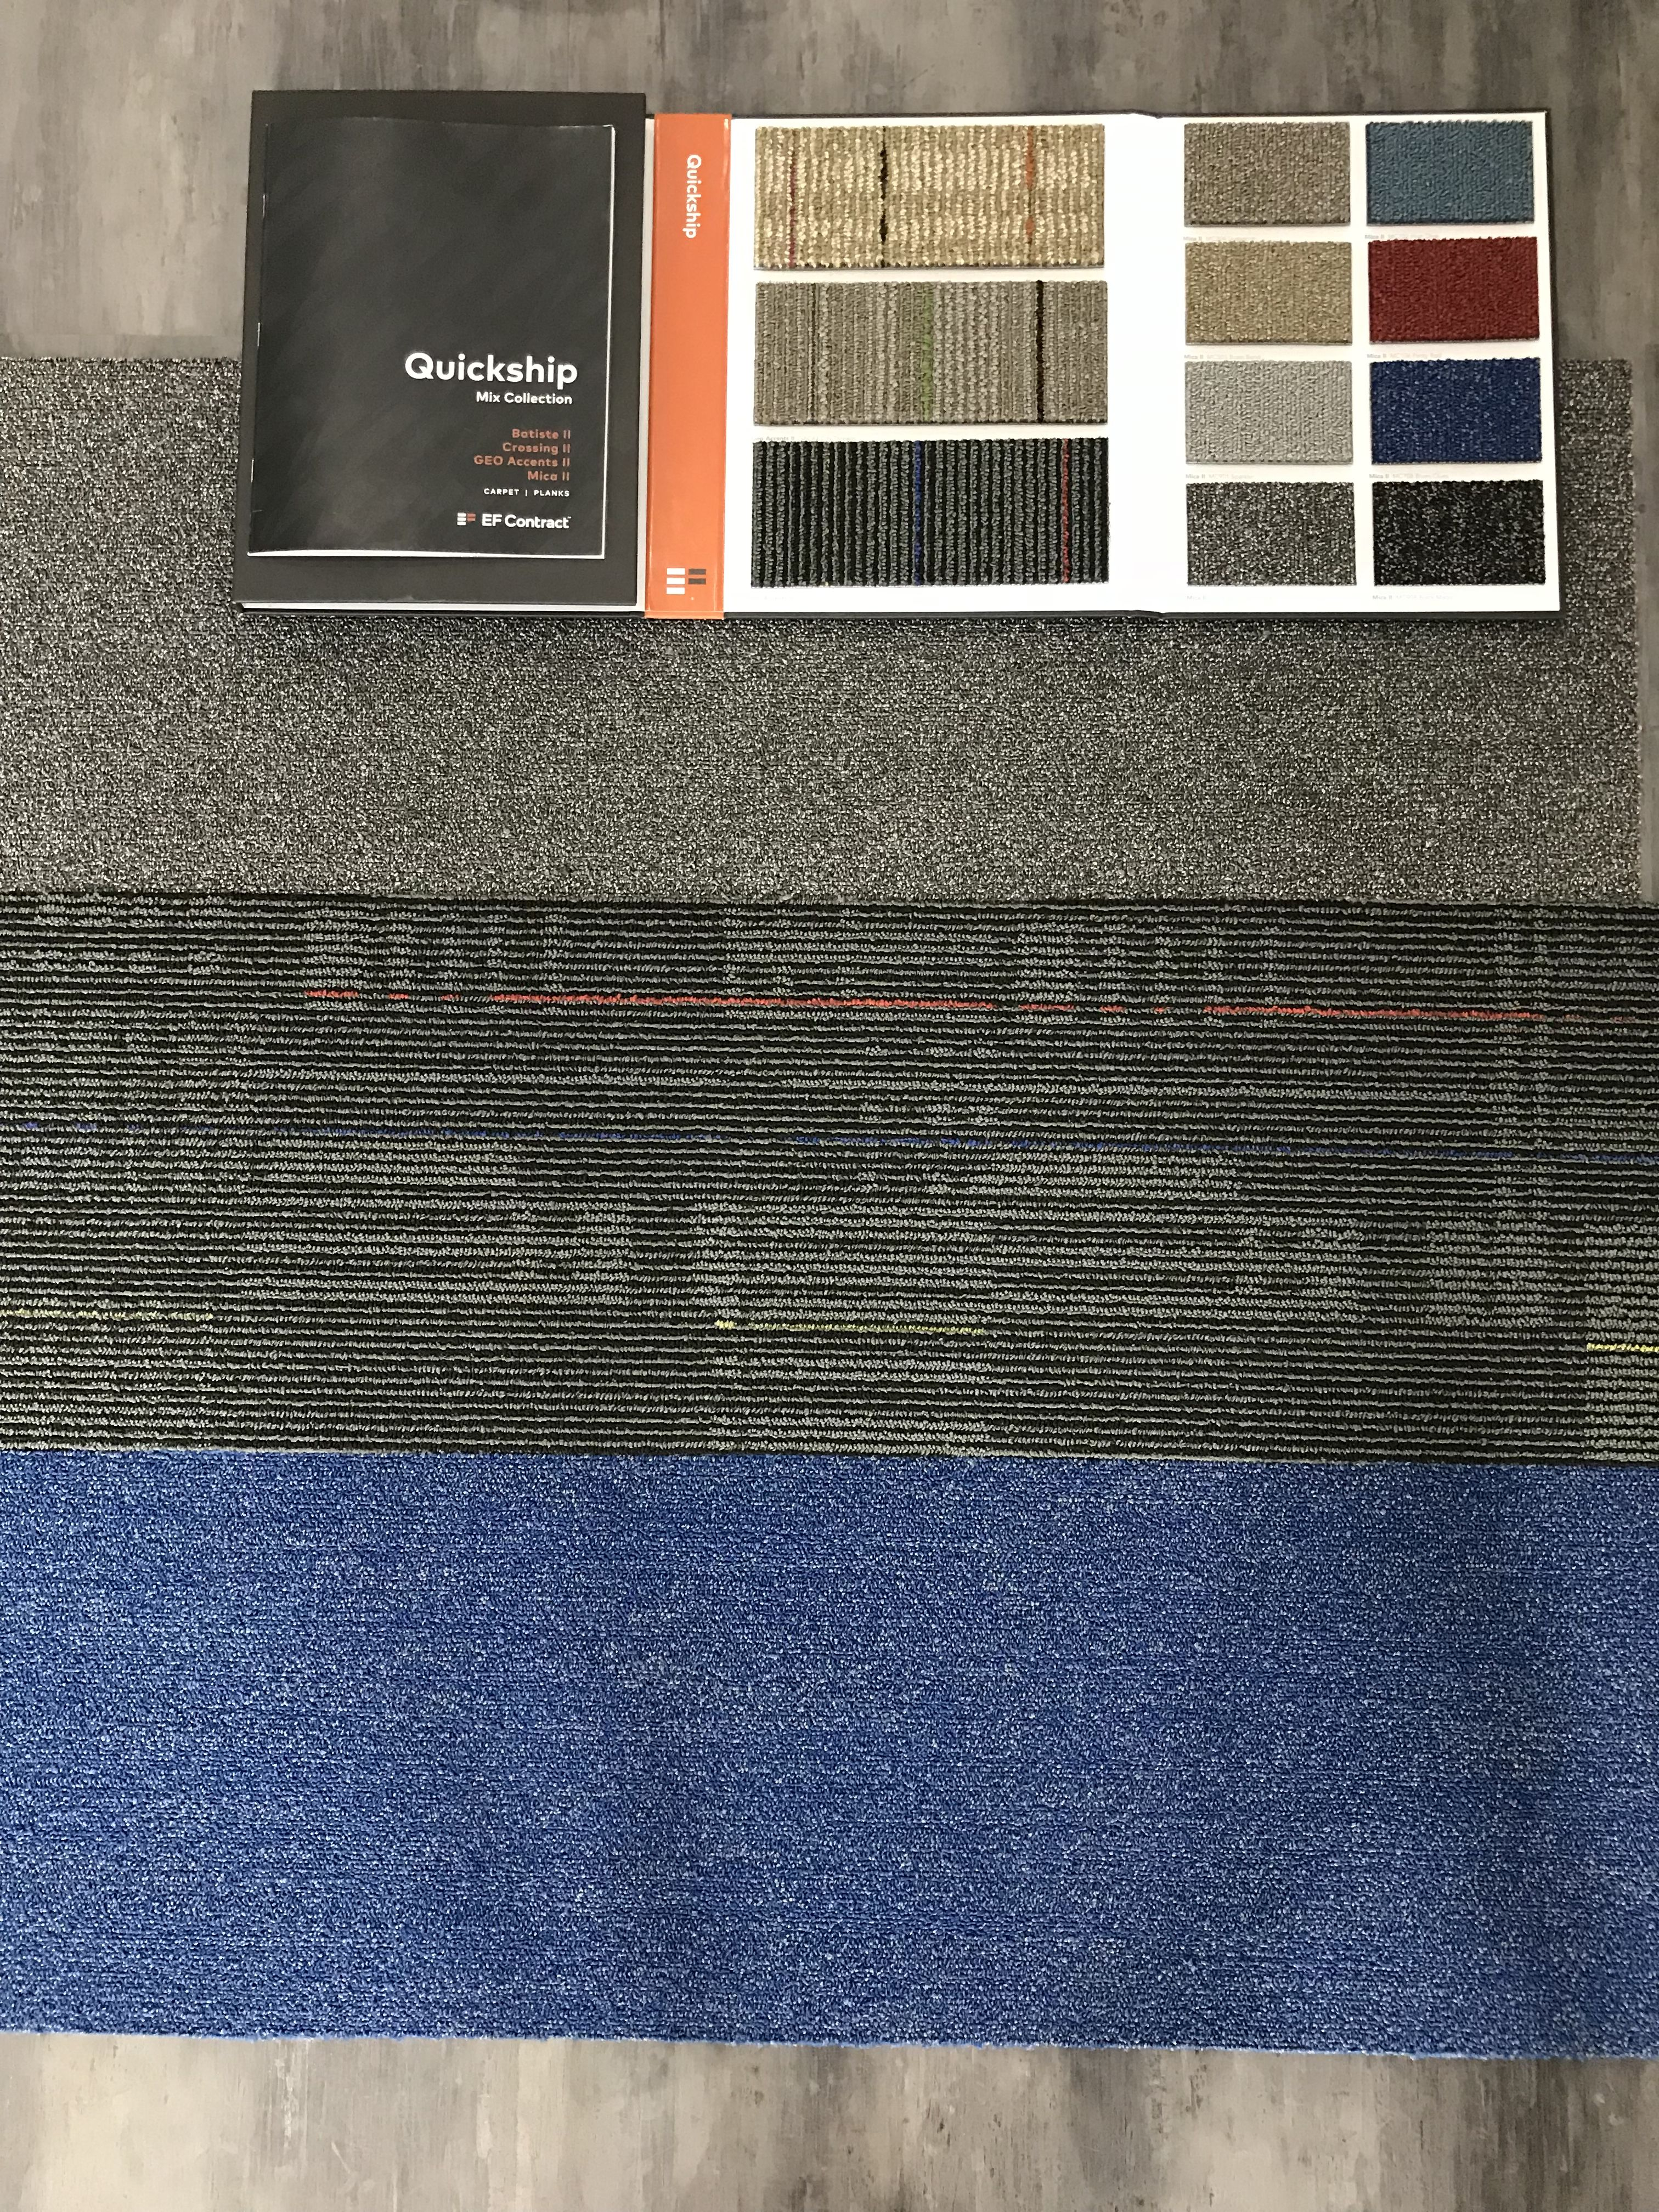 Mix Collection 12 X 48 Quick Ship Carpet Tile By Ef Contract